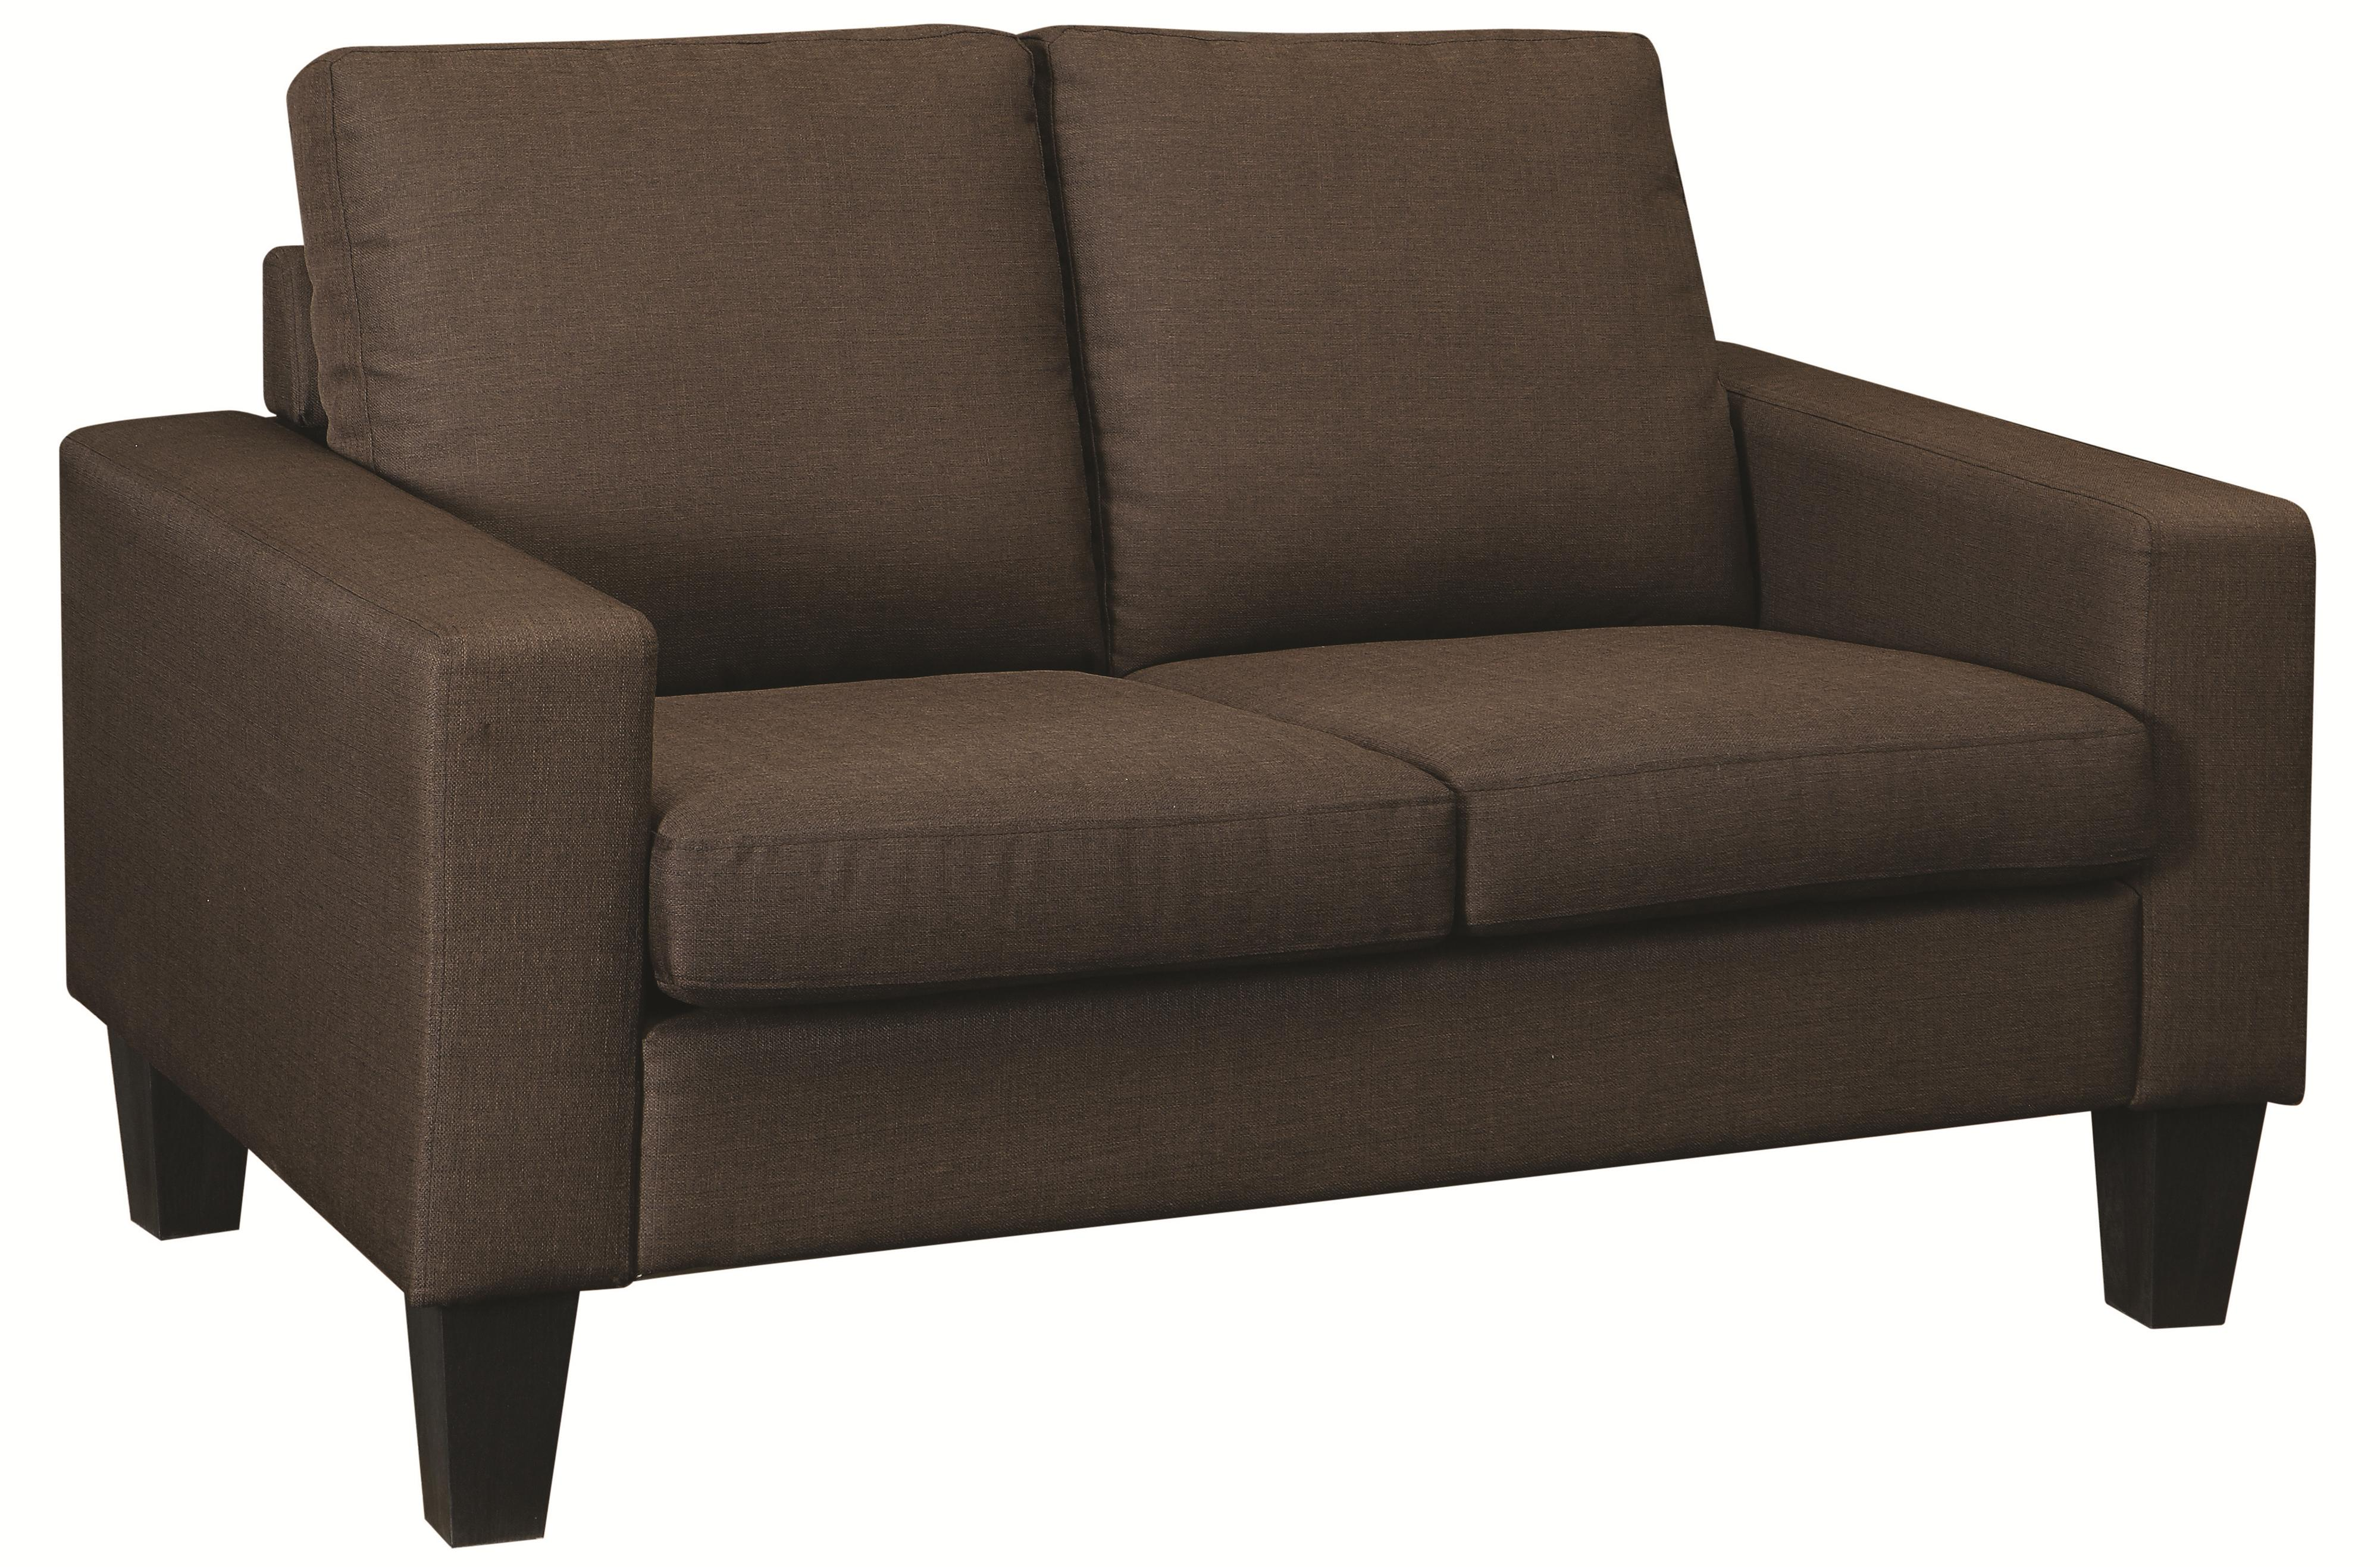 Coaster Bachman Love Seat - Item Number: 504768-Chocolate Linen